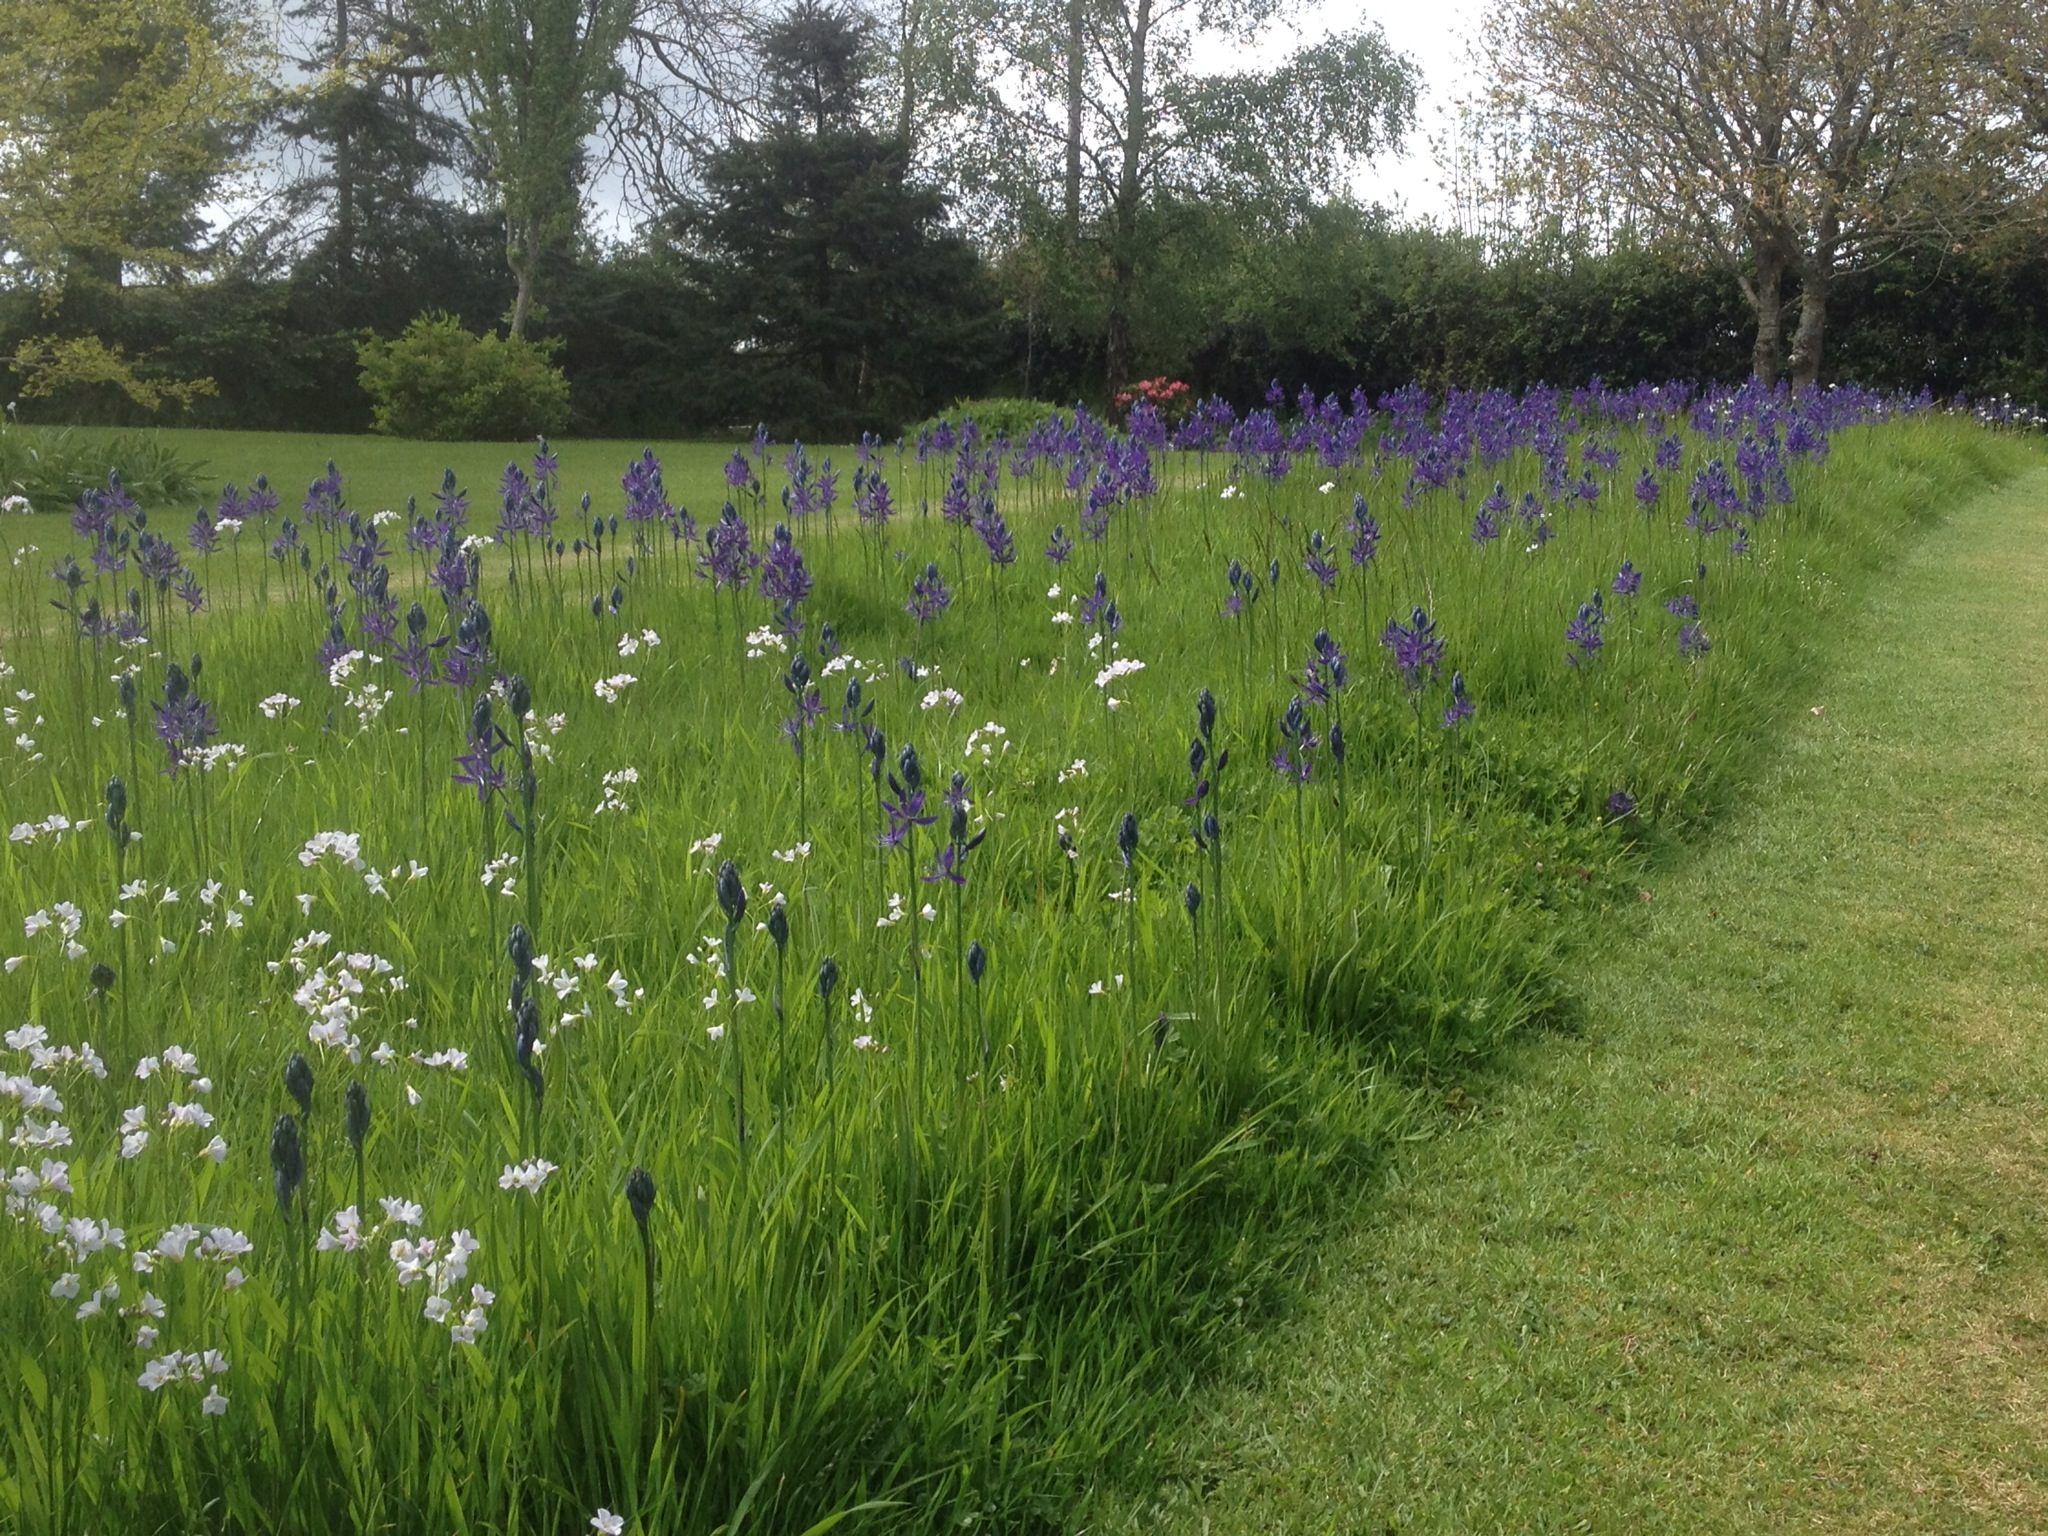 Camassia cricket pitch lewis cottage plants for Wild grass gardens